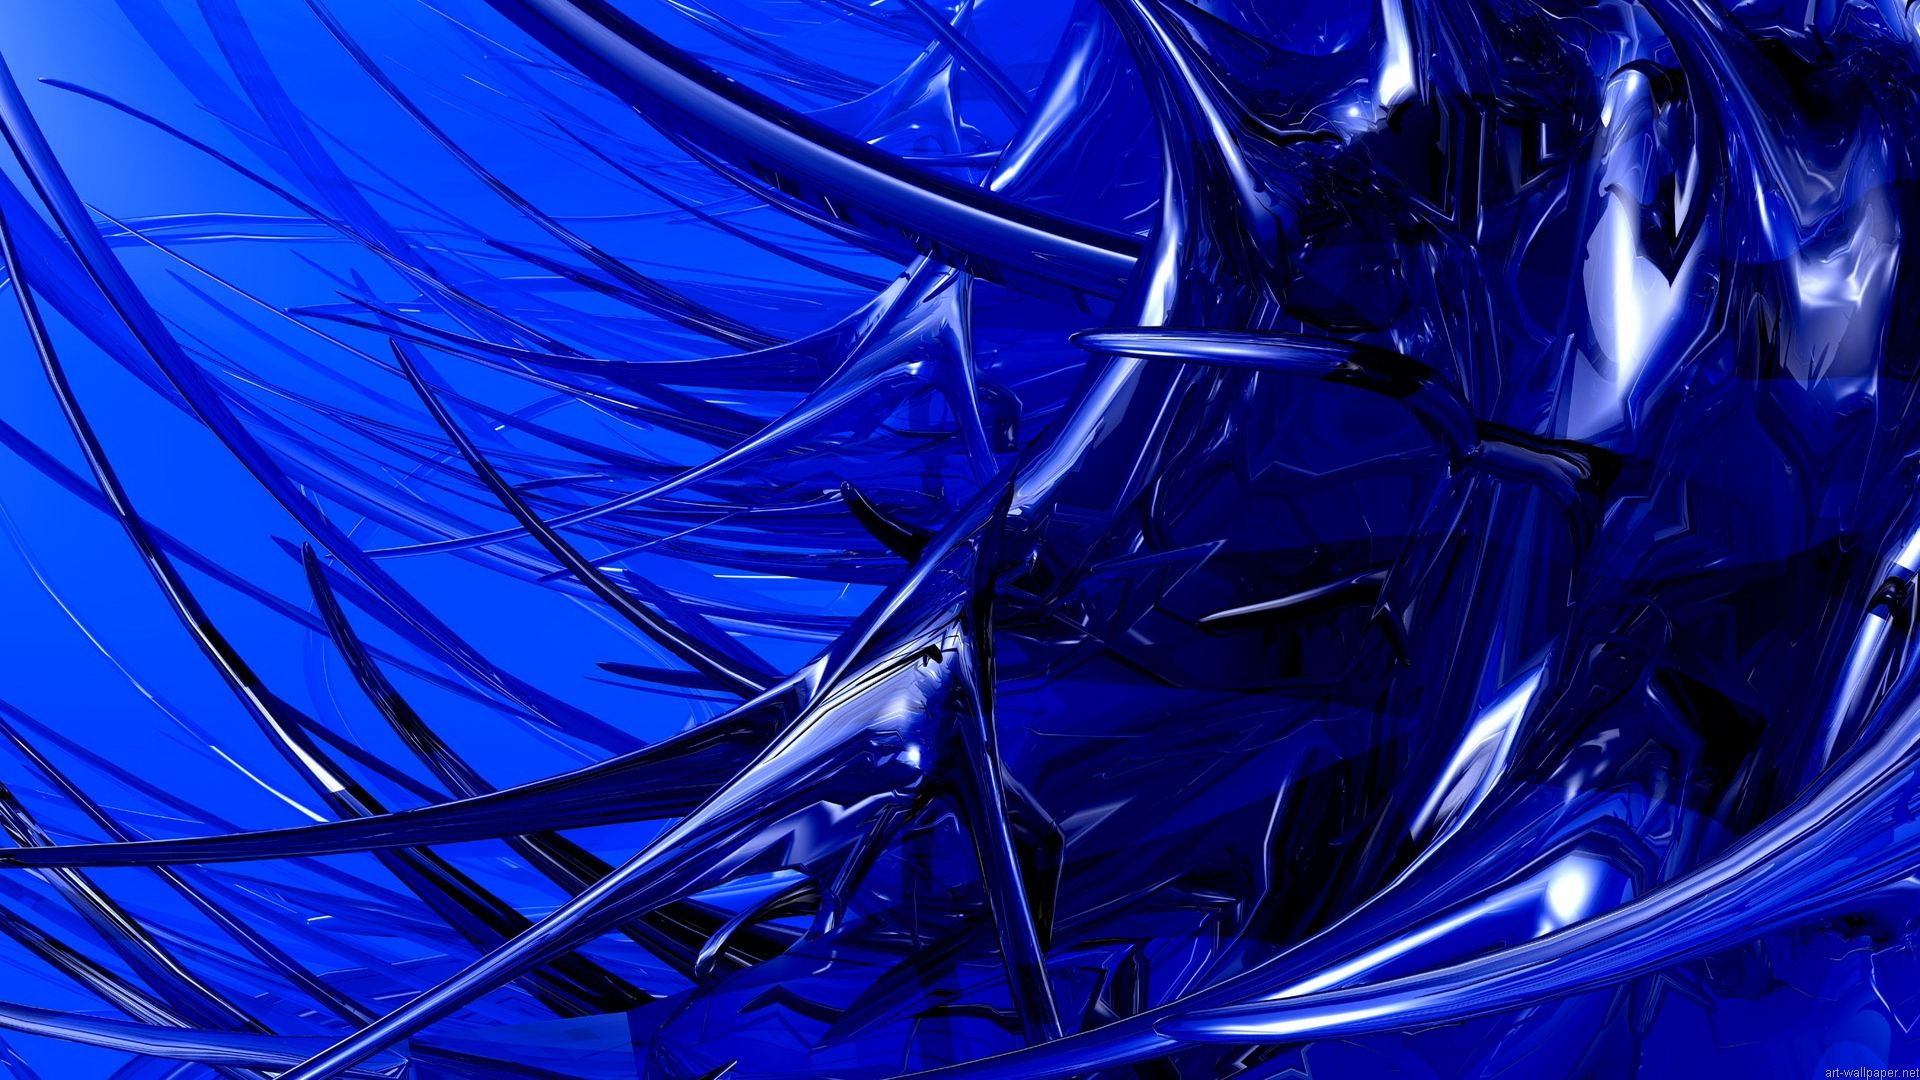 Abstract hd Wallpaper widescreen pictures